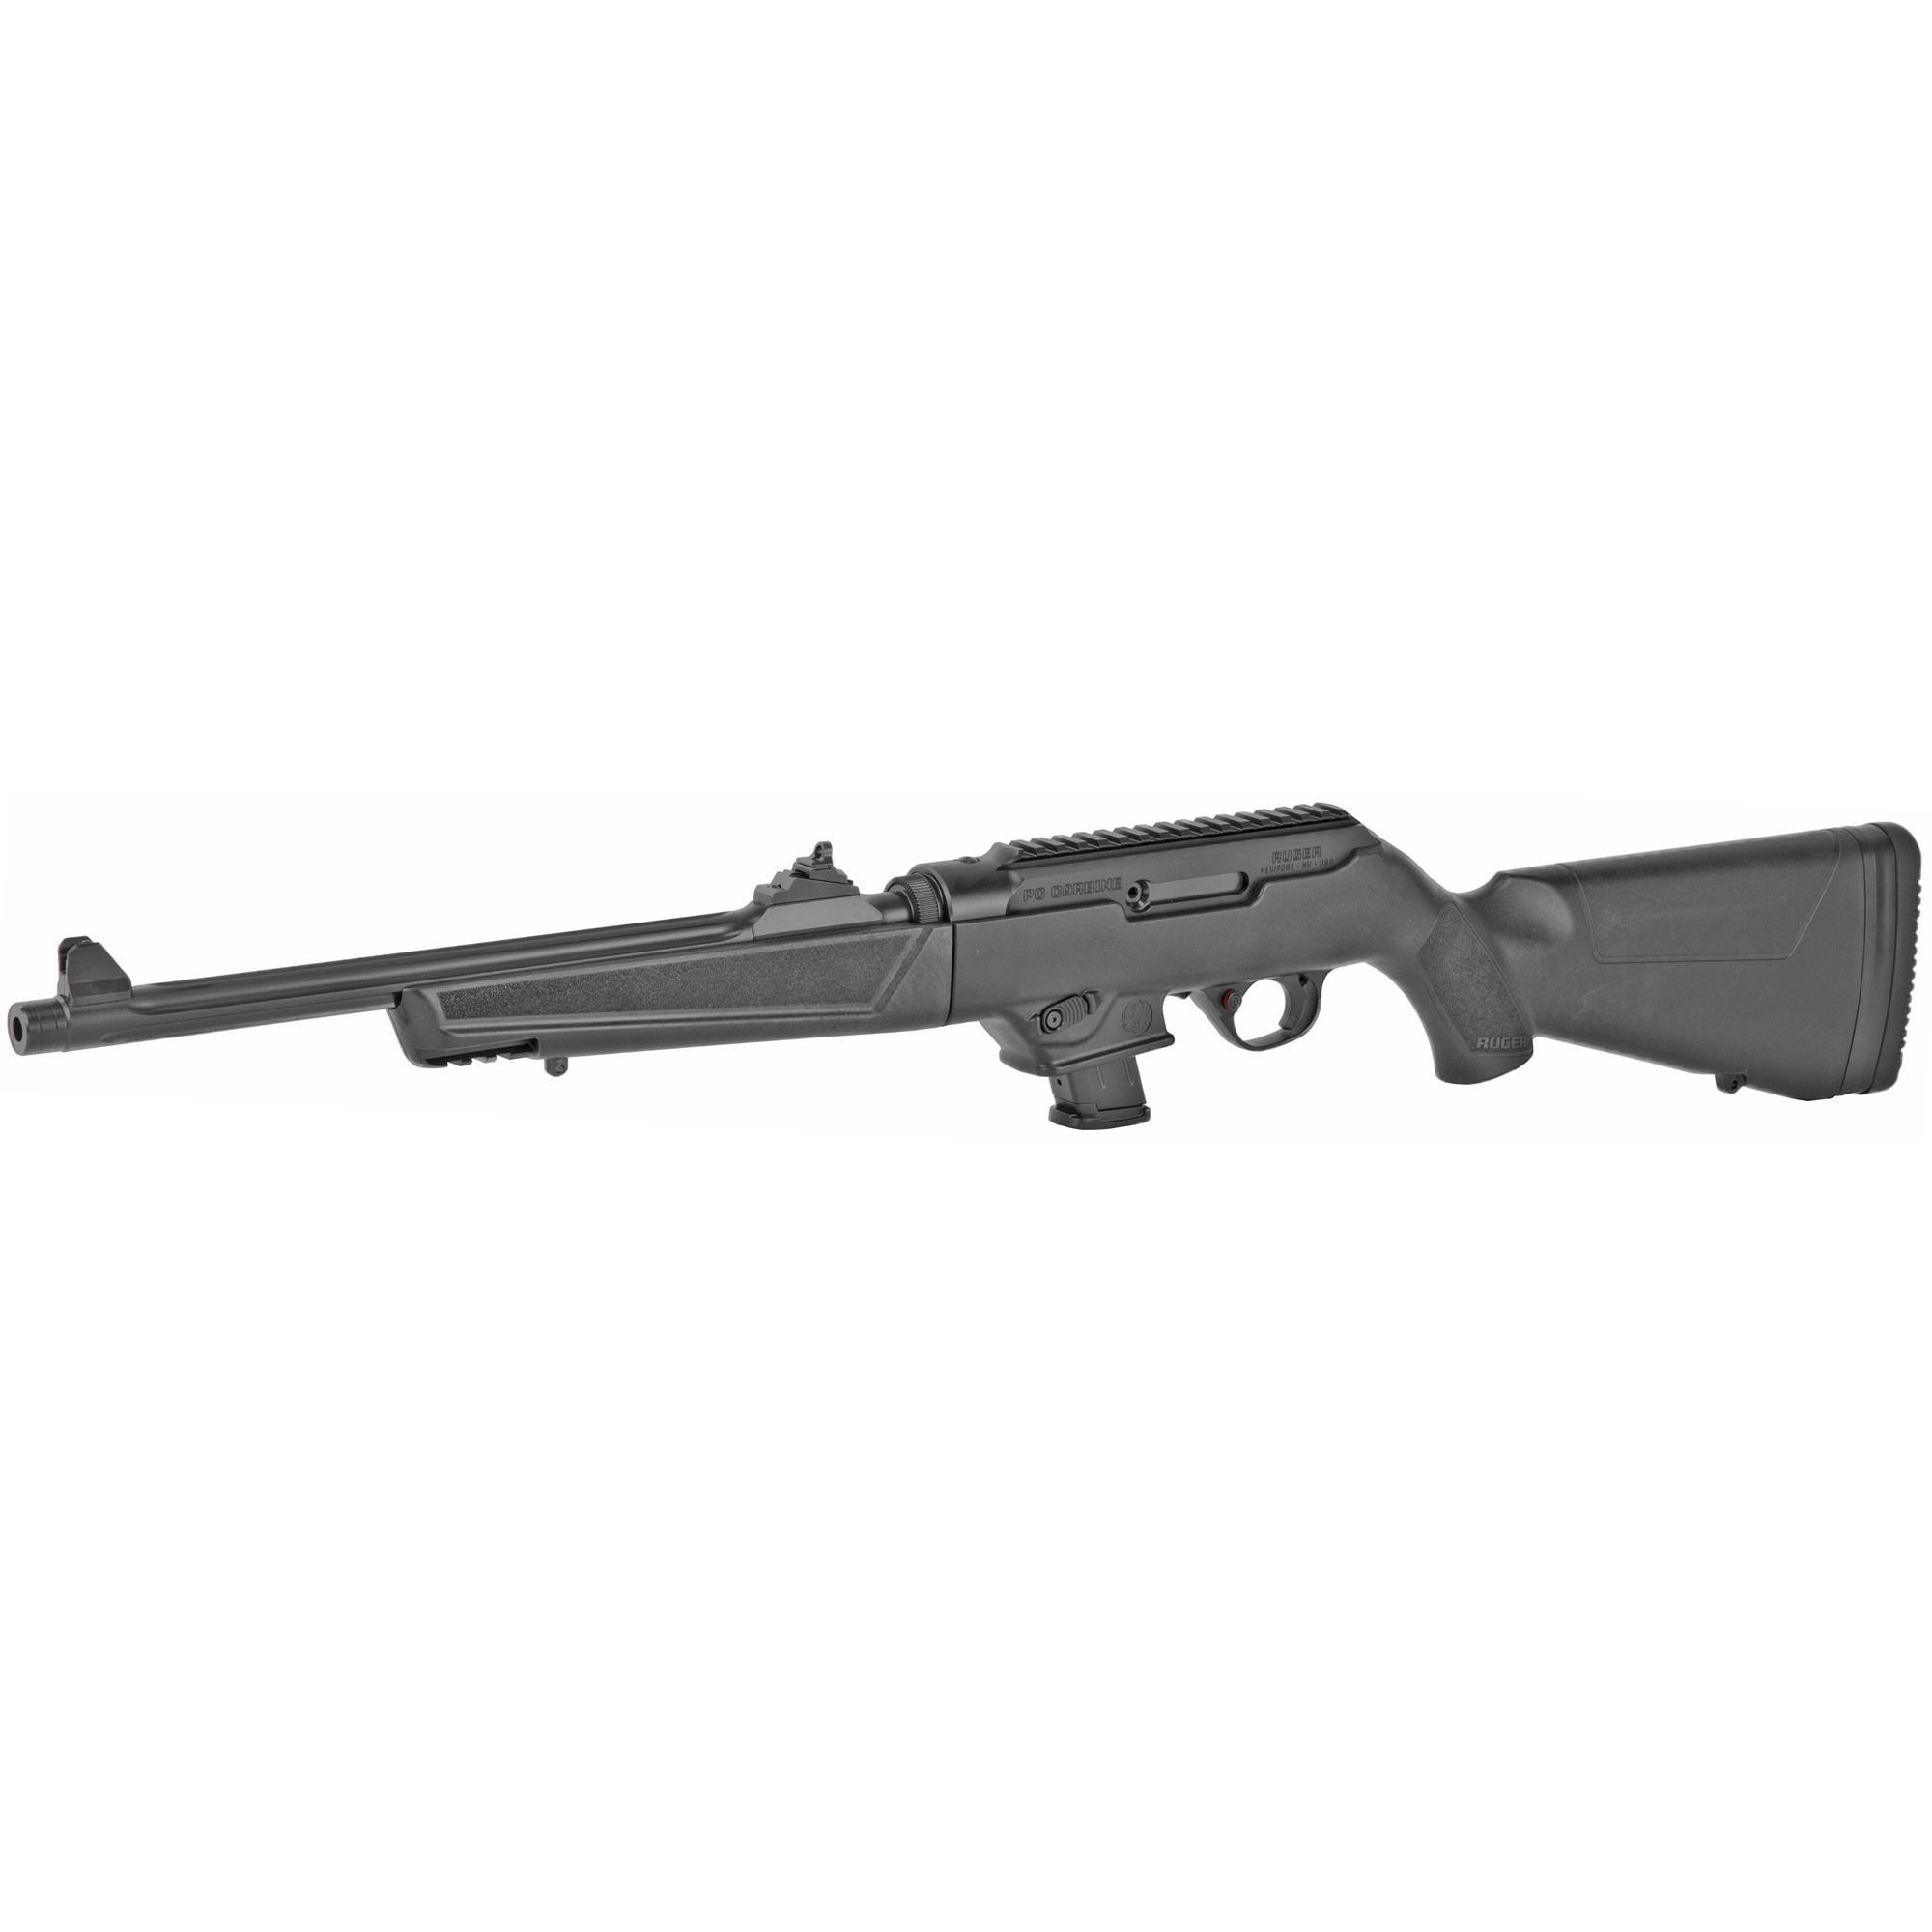 Ruger PC Carbine Rifle 40S&W